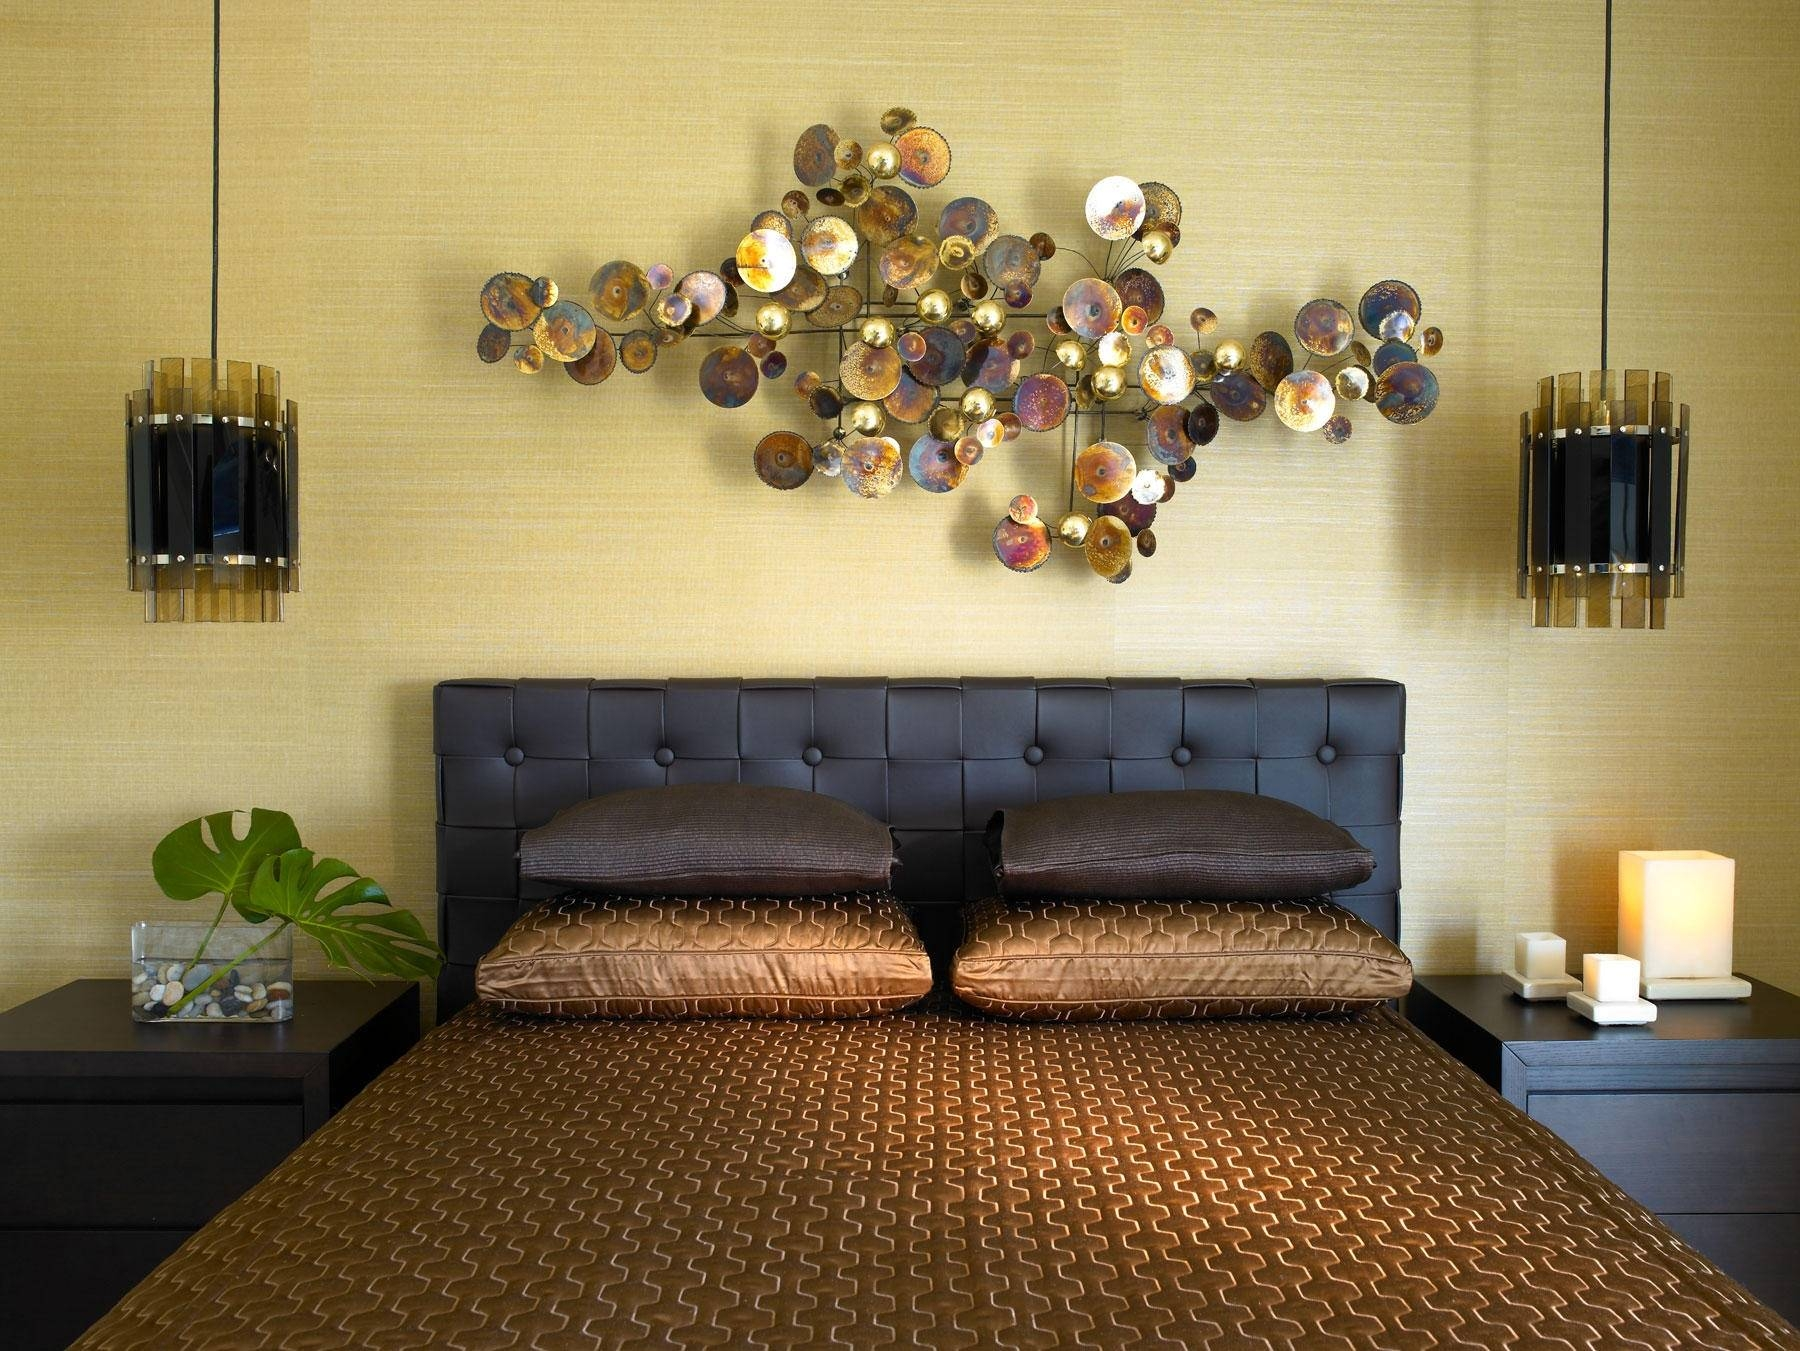 Wall Art Over Bed Home Design Styles Interior Ideas Superb For Newest Over The Bed Wall Art (View 17 of 20)